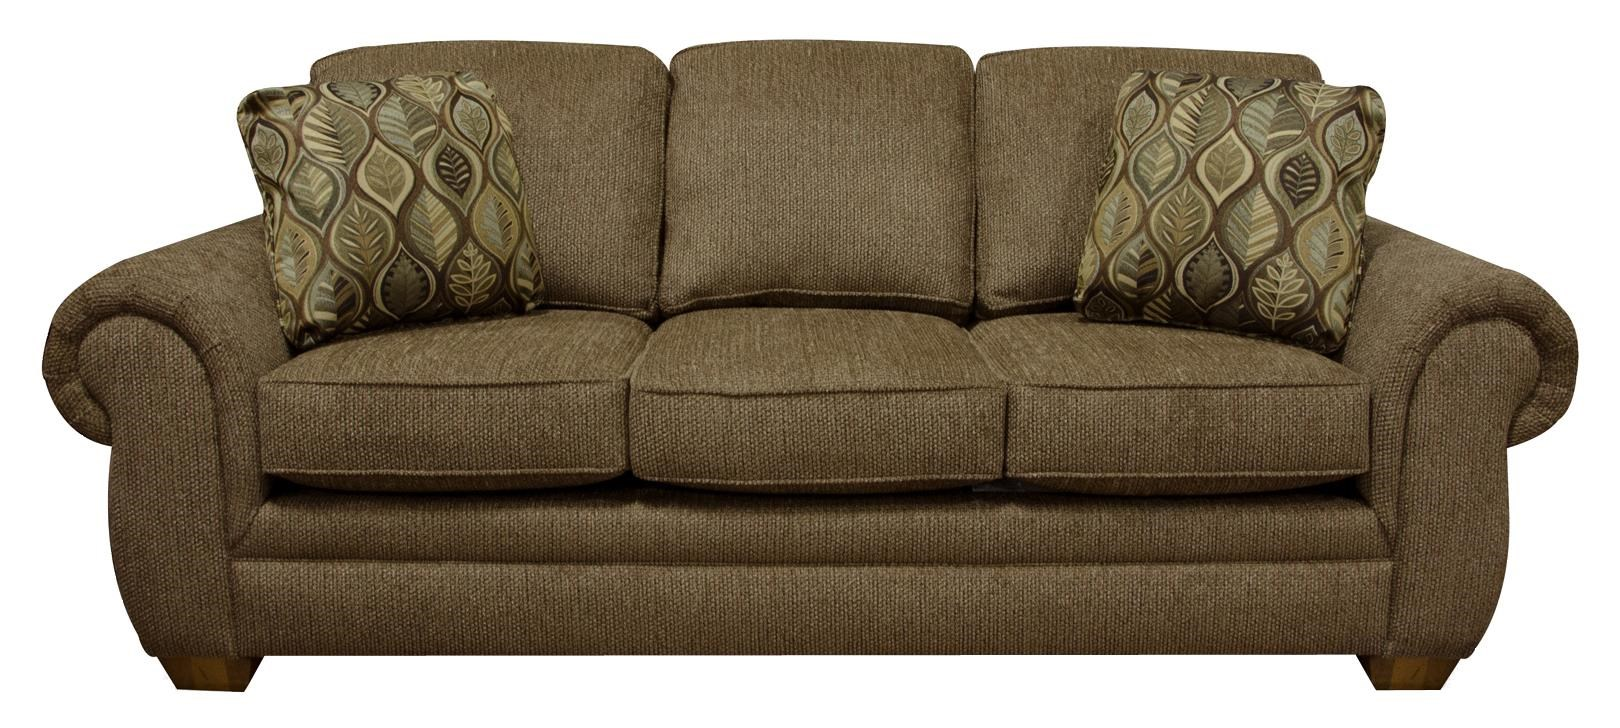 England Walters Sofa with Traditional Style Pilgrim